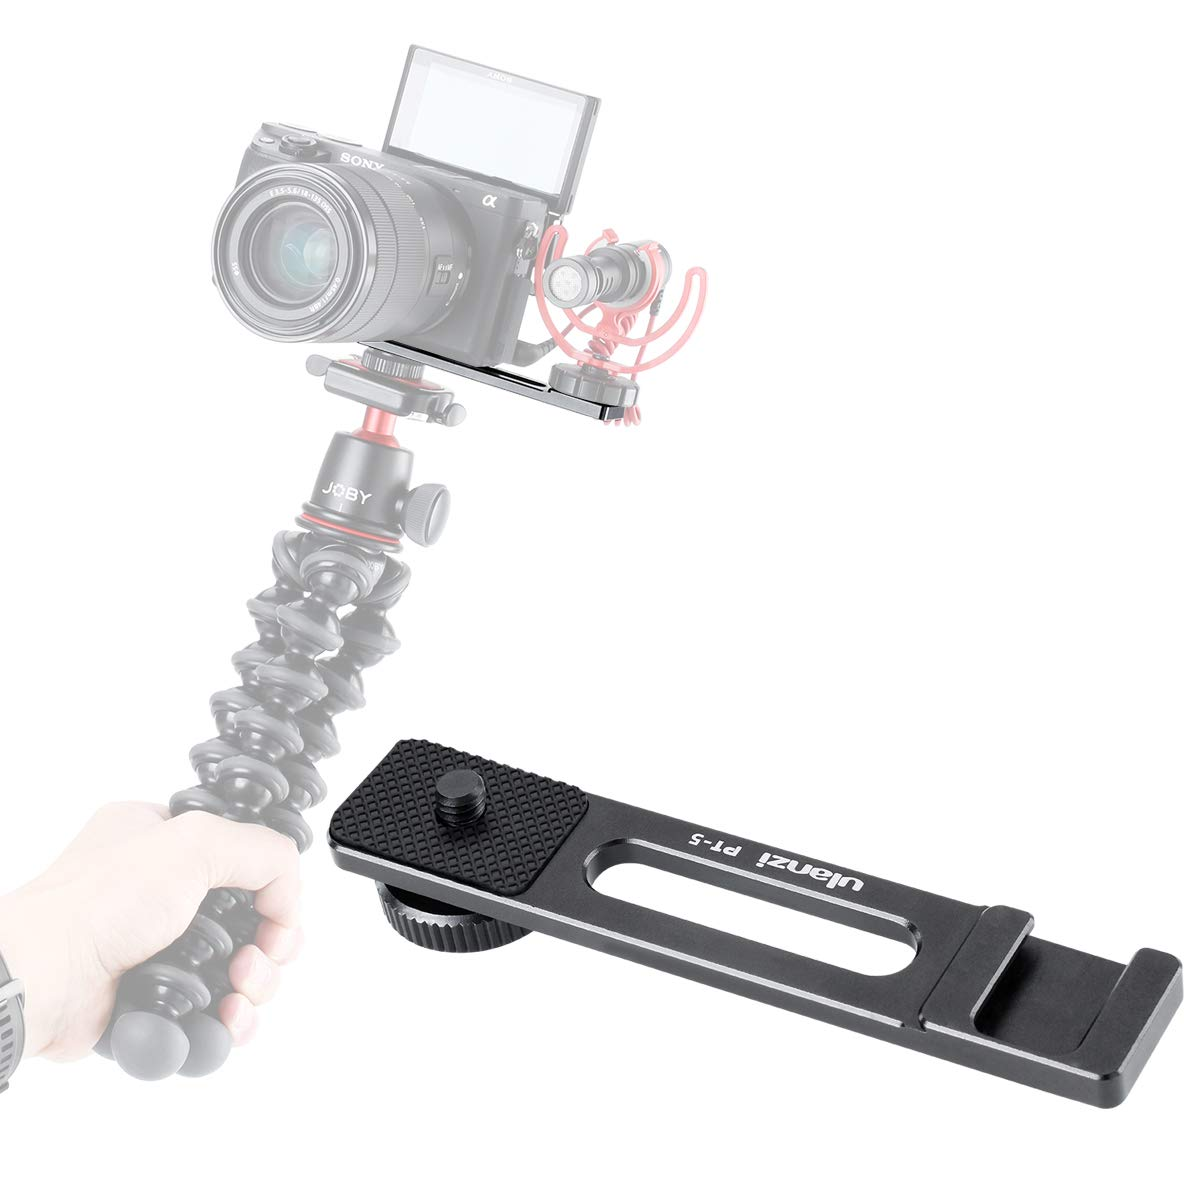 ULANZI PT-5 Vlog Cold Shoe Bracket Extension Bar Apply for Microphone LED Video Light w 1/4'' Tripod Screw for Sony A6400 6300 6500 6000 Nikon Canon G7X II III Mirrorless Camera Vlogging Accessories by ULANZI